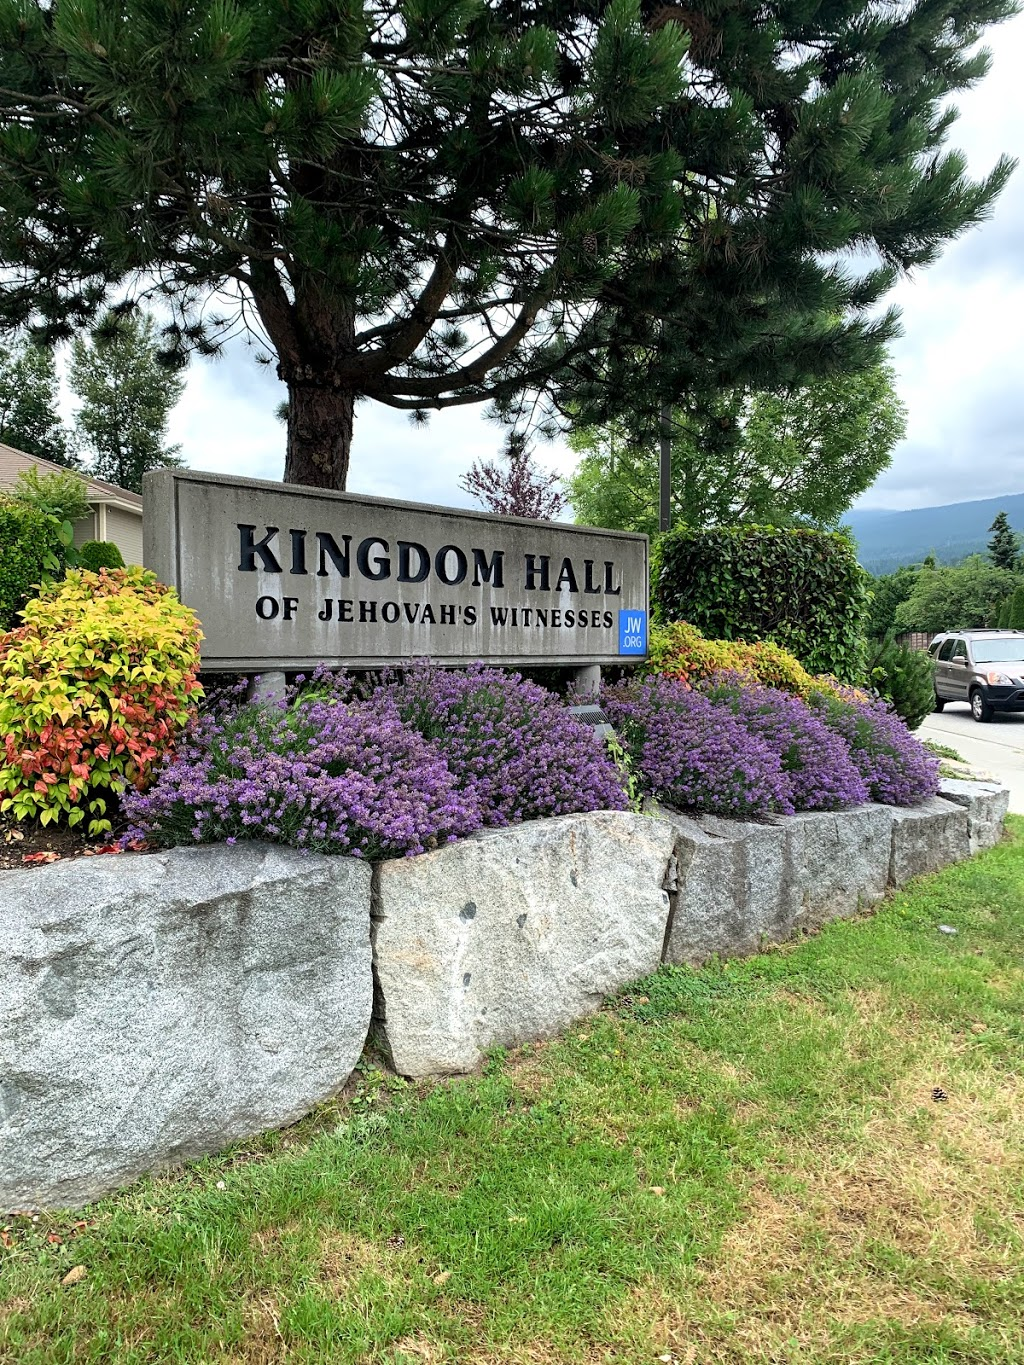 Kingdom Hall of Jehovahs Witnesses | church | 1360 Pipeline Rd, Coquitlam, BC V3E 2R2, Canada | 6049411875 OR +1 604-941-1875